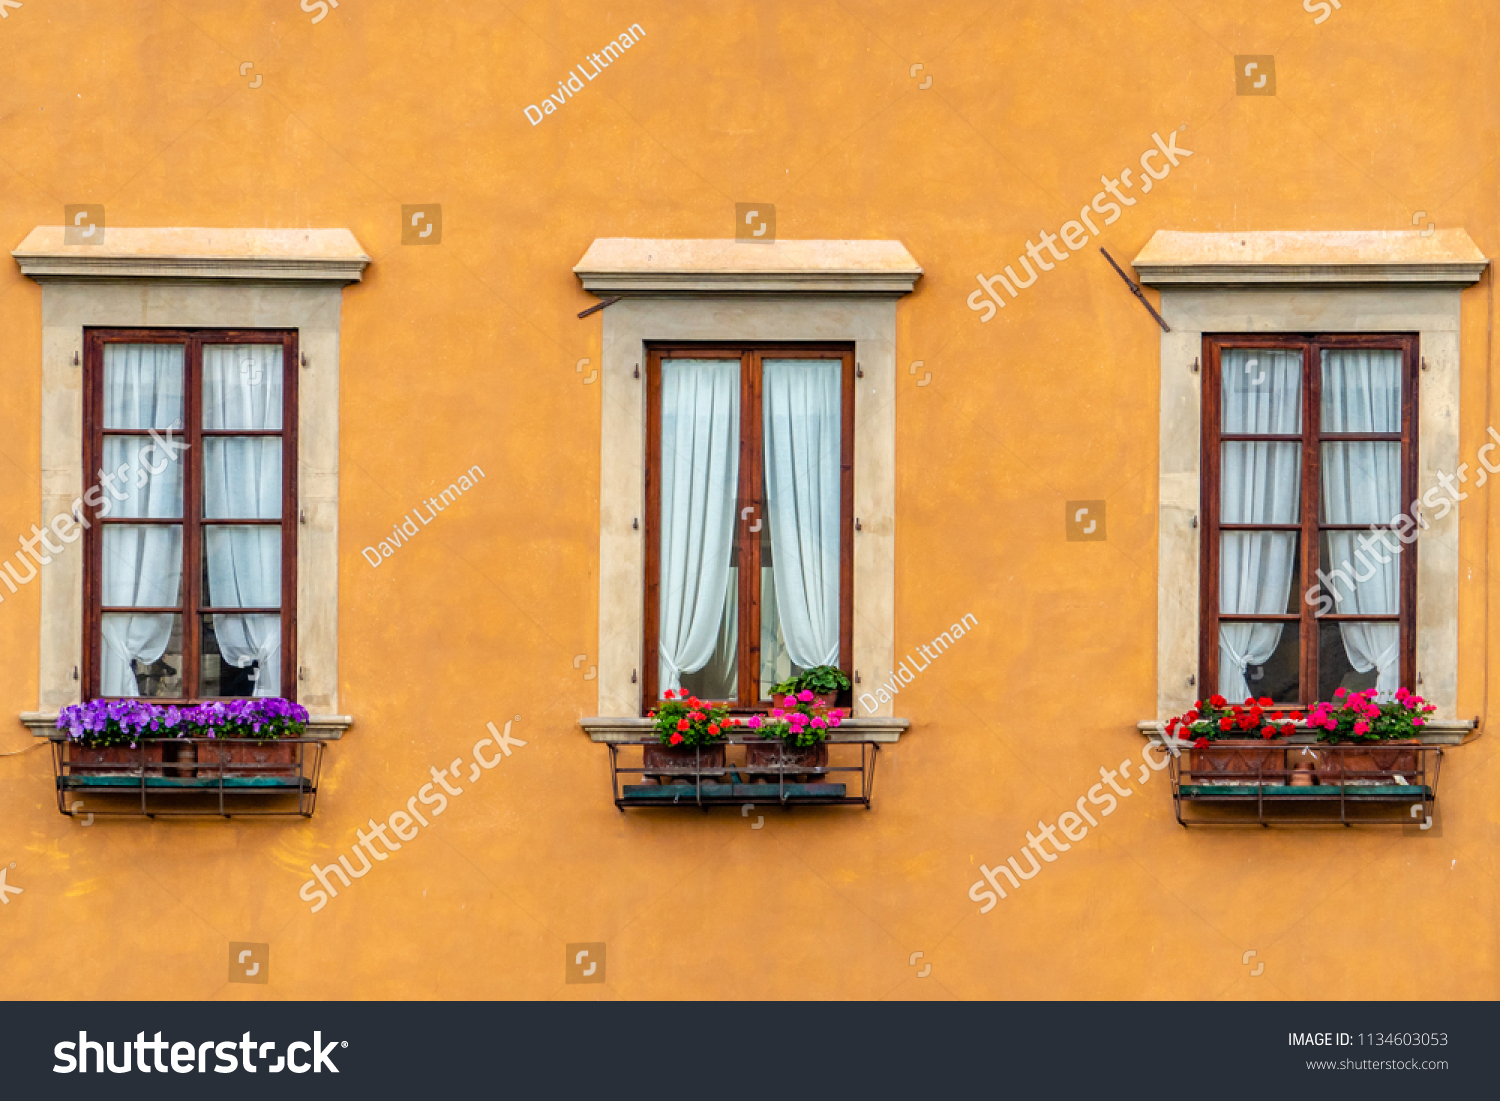 Three windows adorn a colorful orange/yellow building with flowers on windowsills in the Tuscany region of Italy in Florence, along the Arno River.